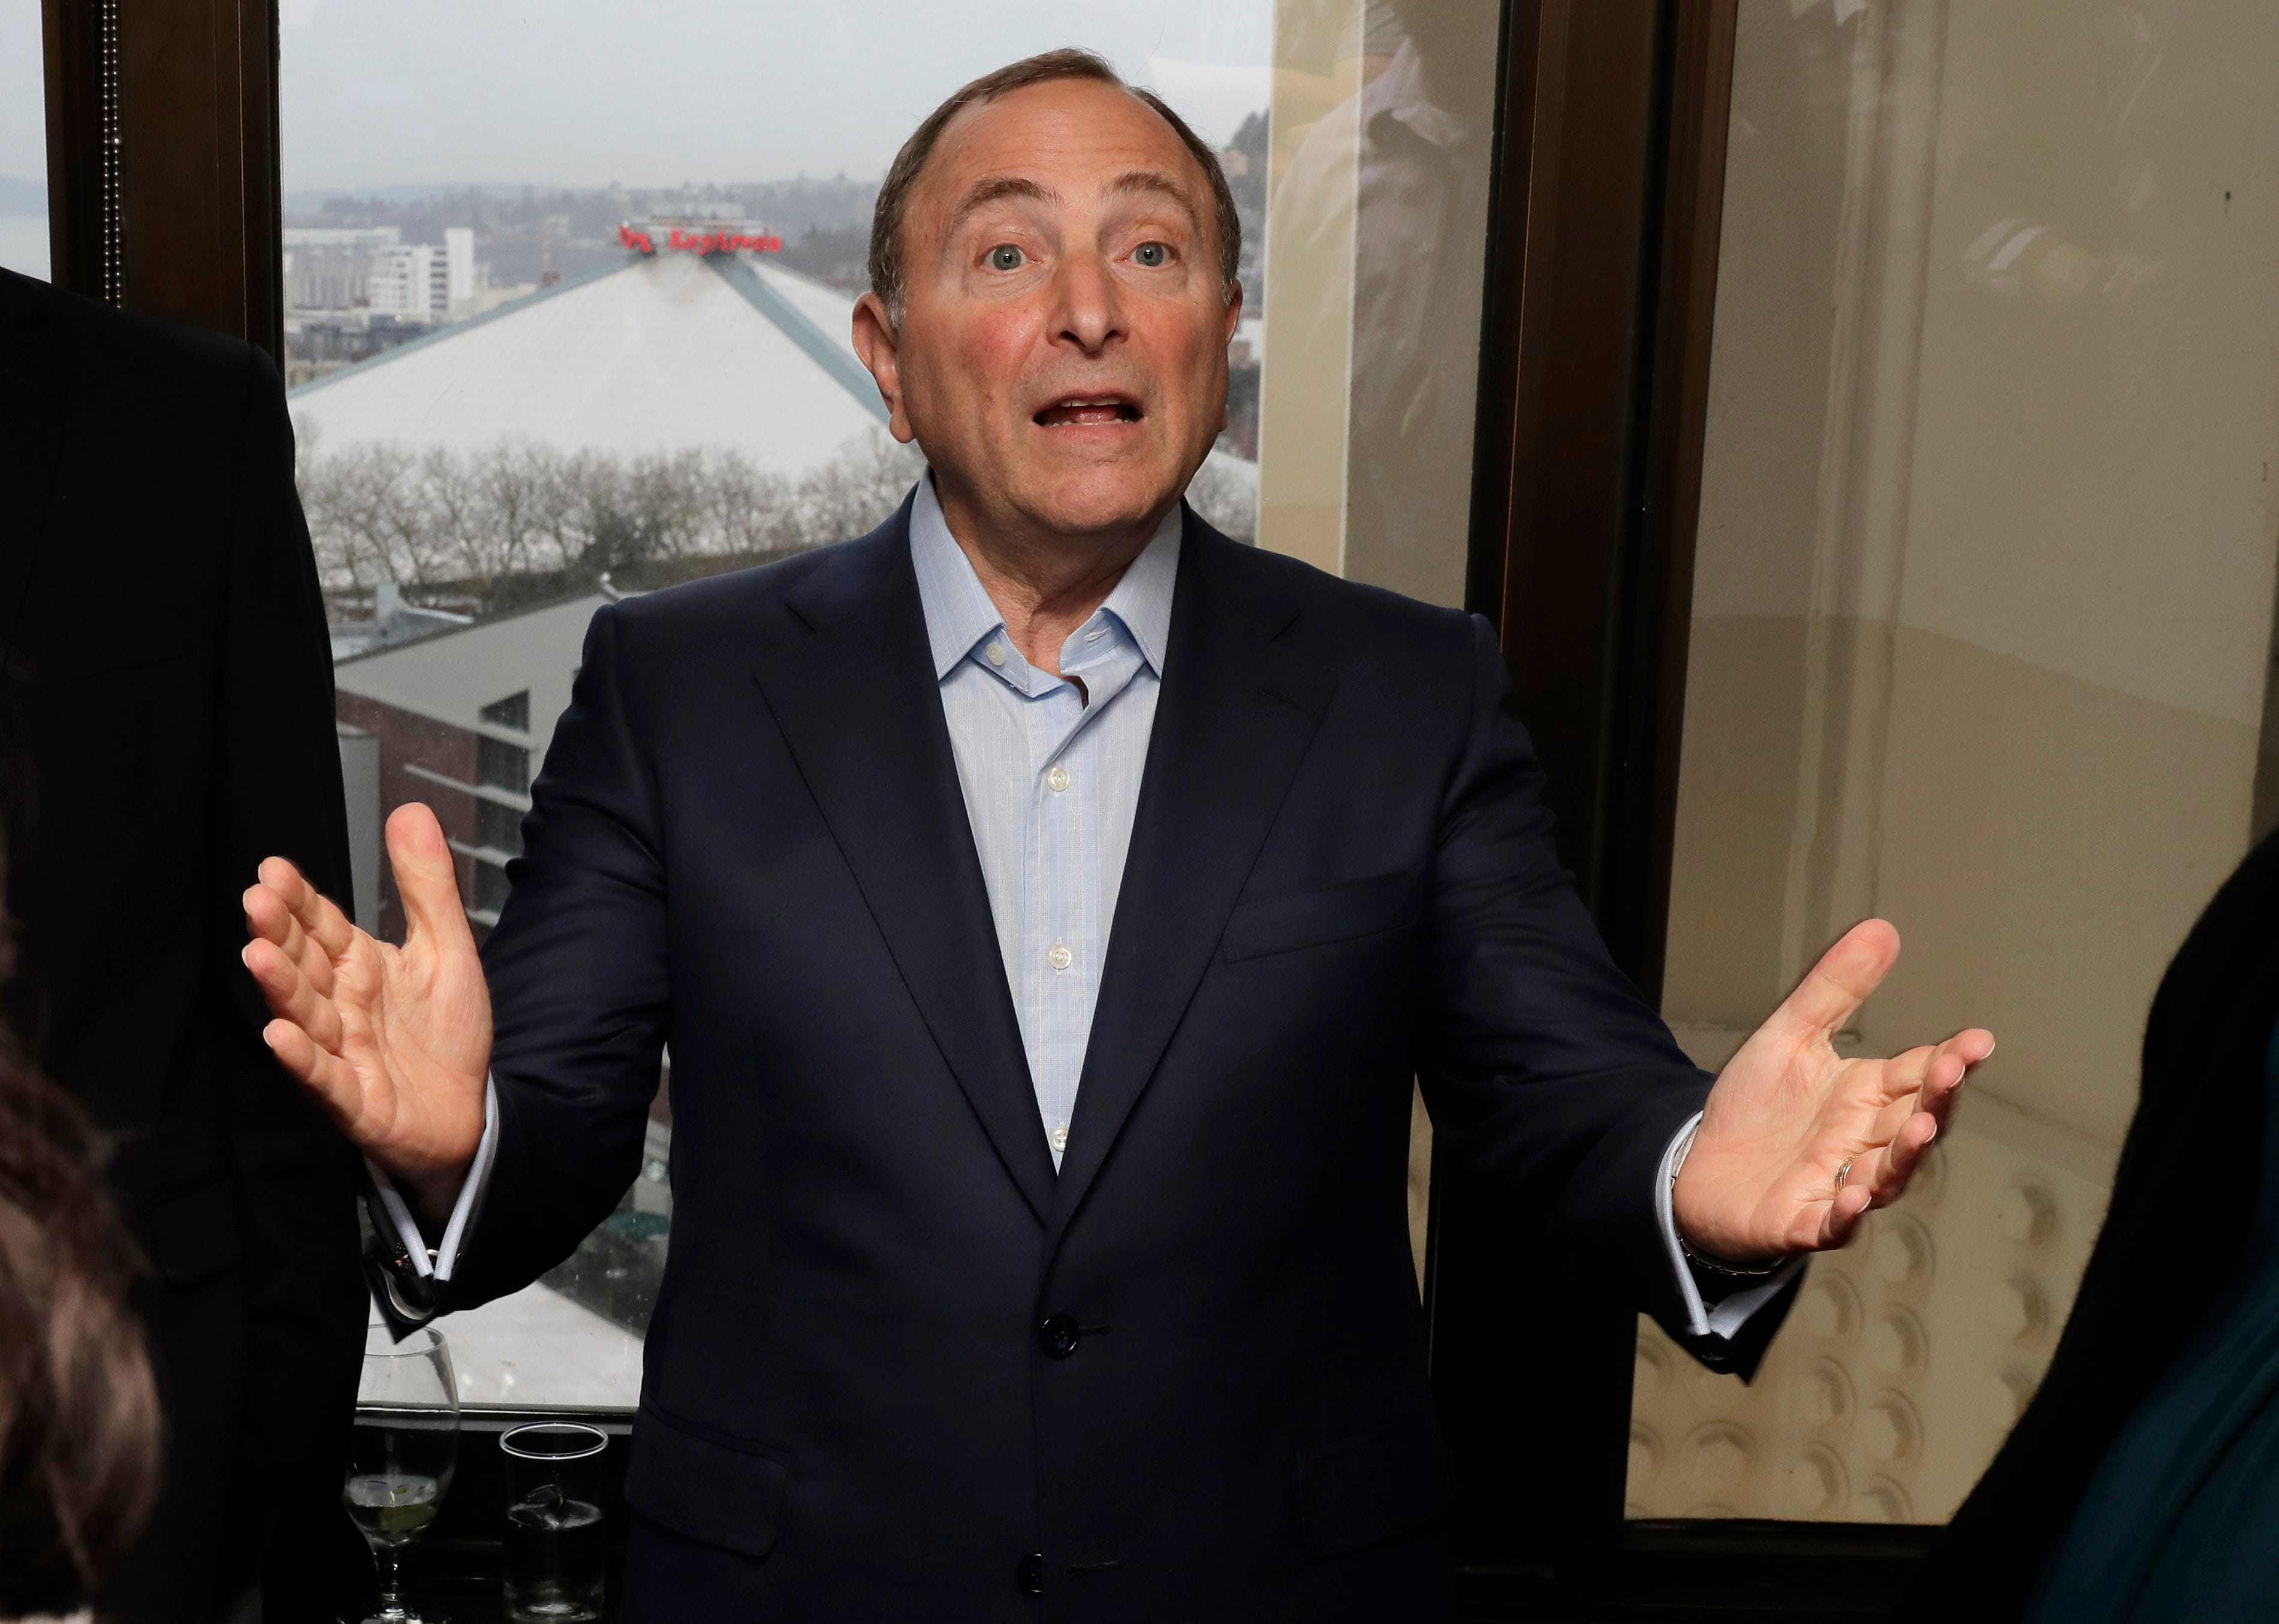 Gary Bettman: Seattle will host NHL draft, All-Star weekend within first seven years